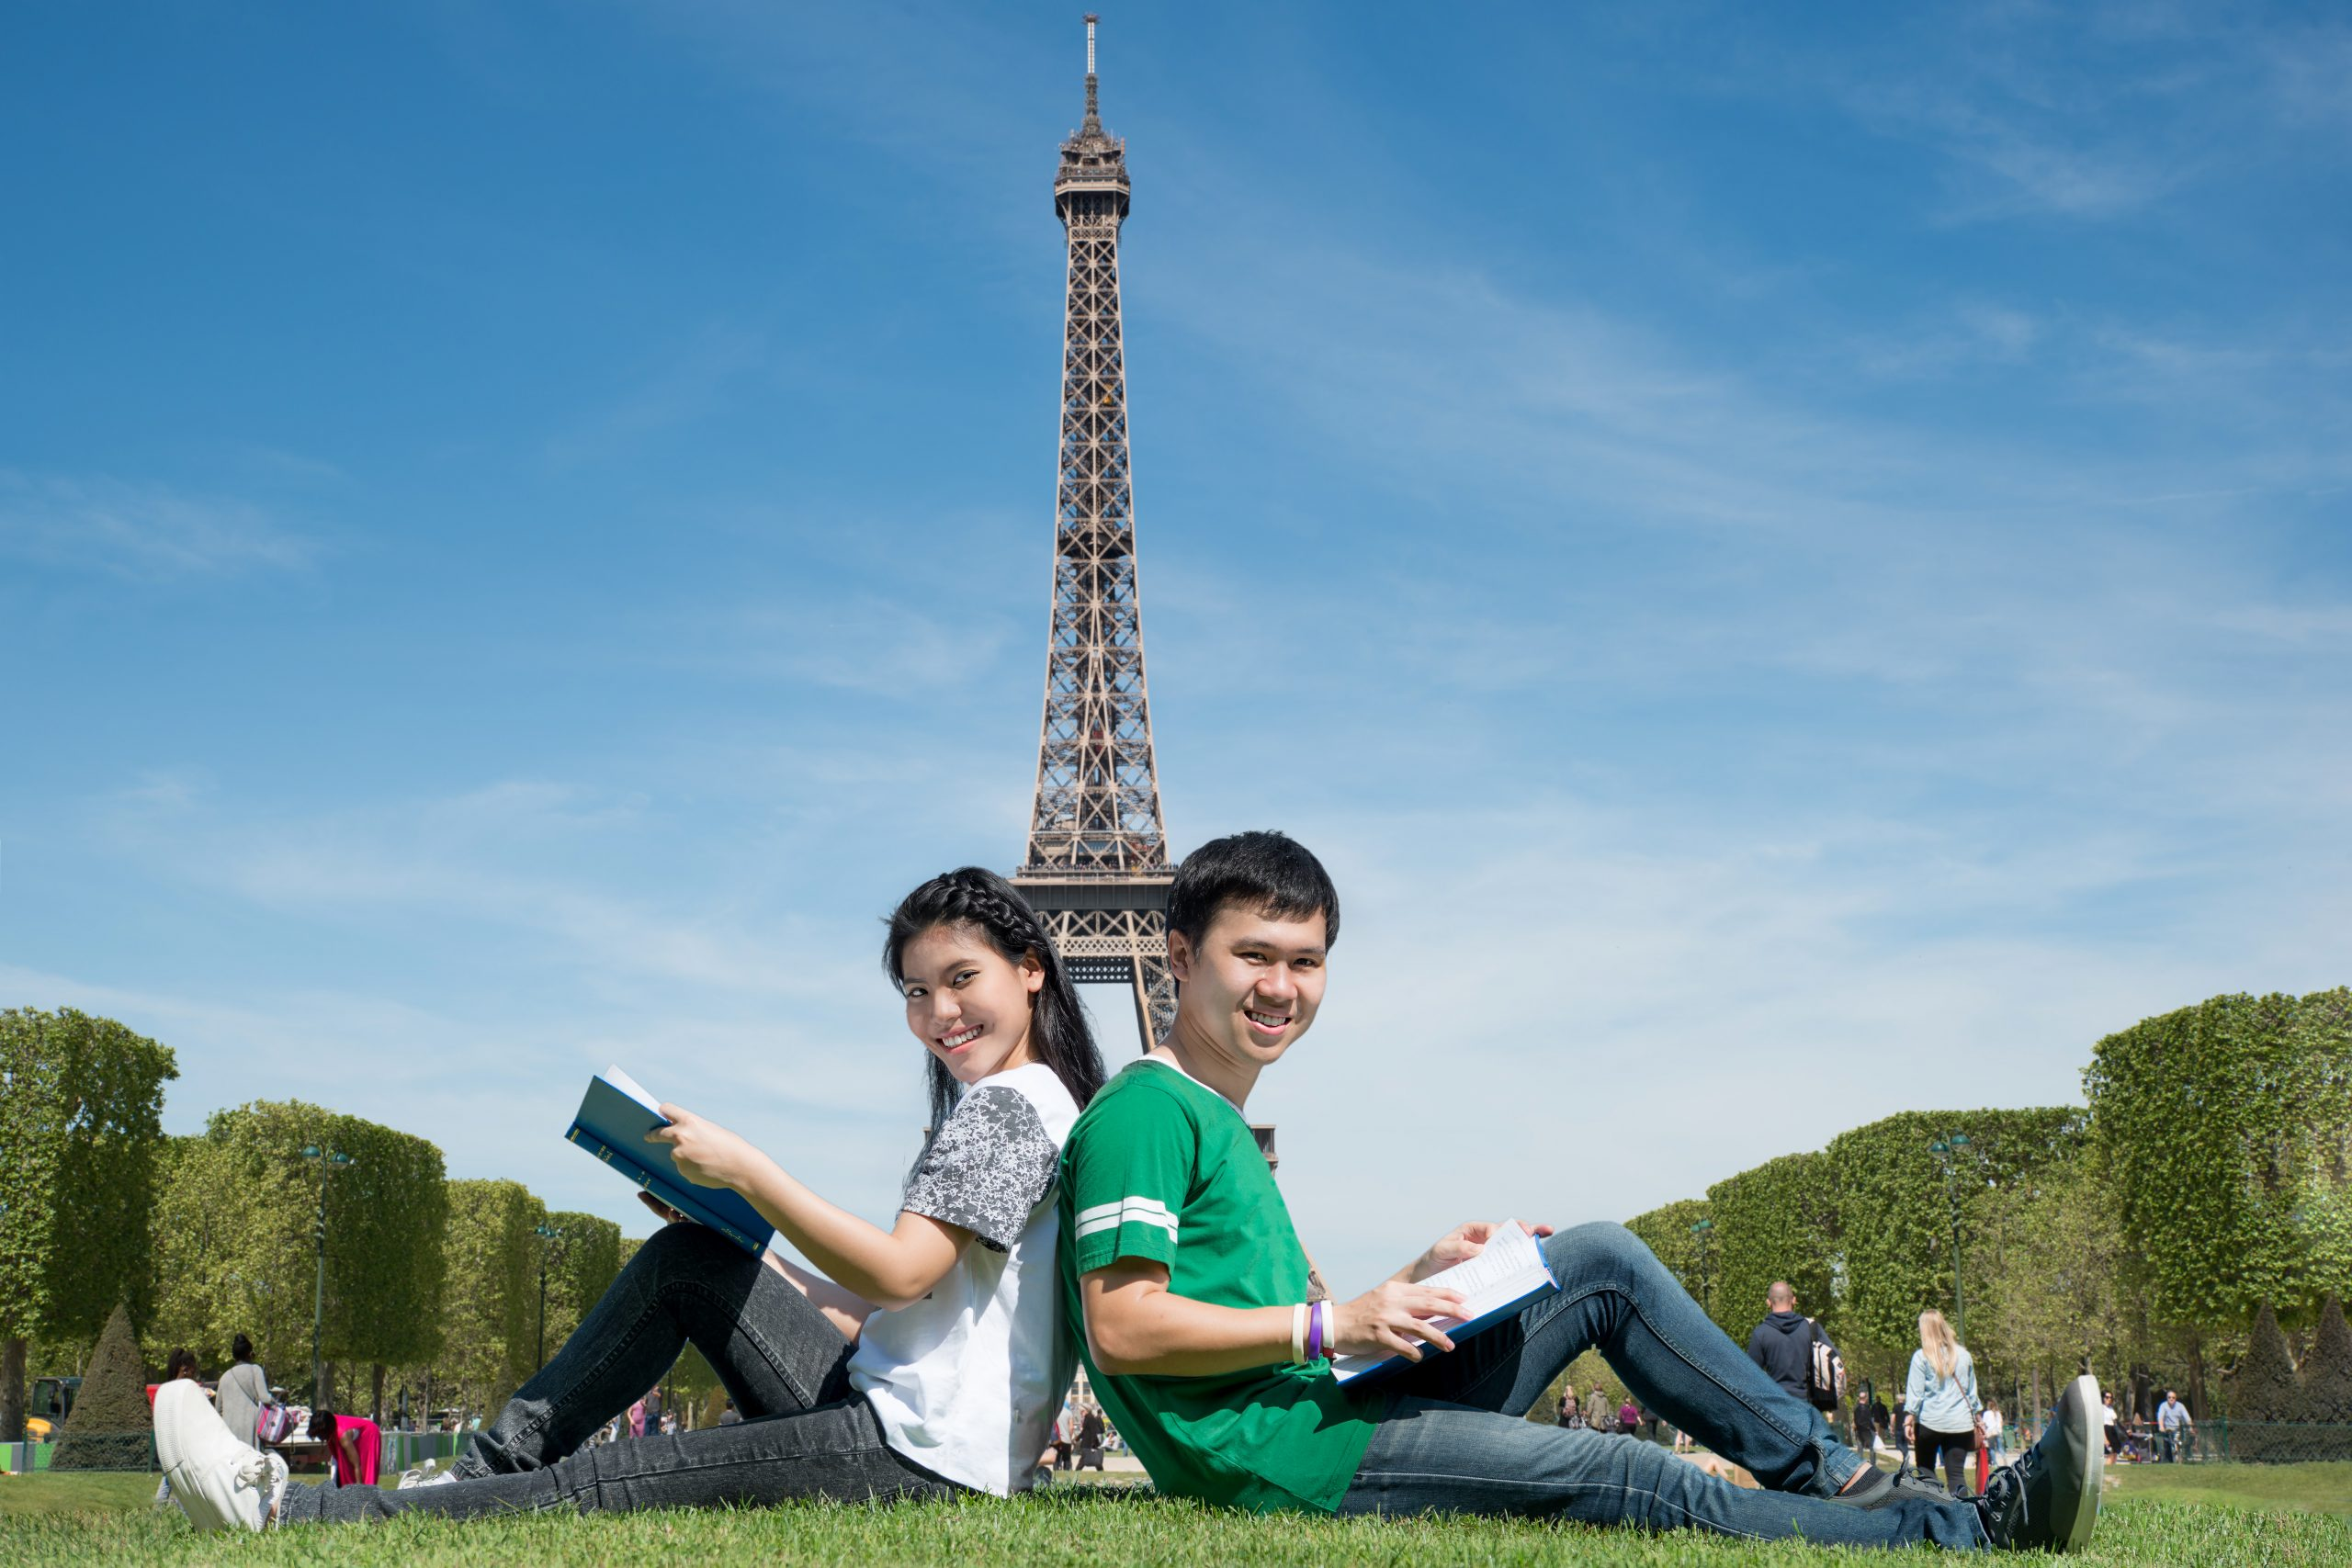 asian-couple-student-reading-book-together-outdoors-park-near-eiffel-tower-paris-france-scaled-1